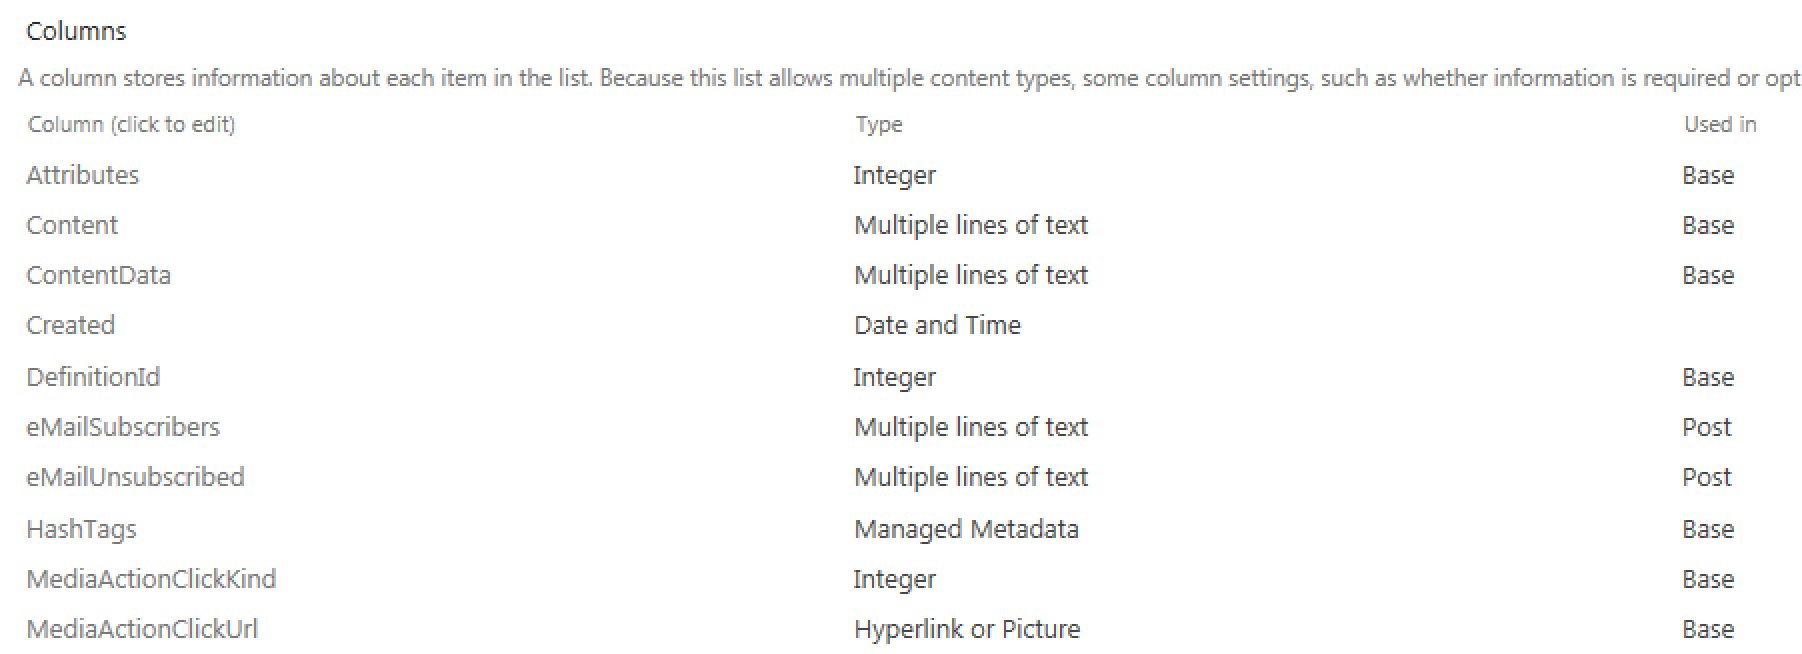 sharepoint community tagging architecture and bug chris weldon you can access your microfeed list by going to personal user lists publishedfeed indeed when i looked at the columns for this list hashtags from